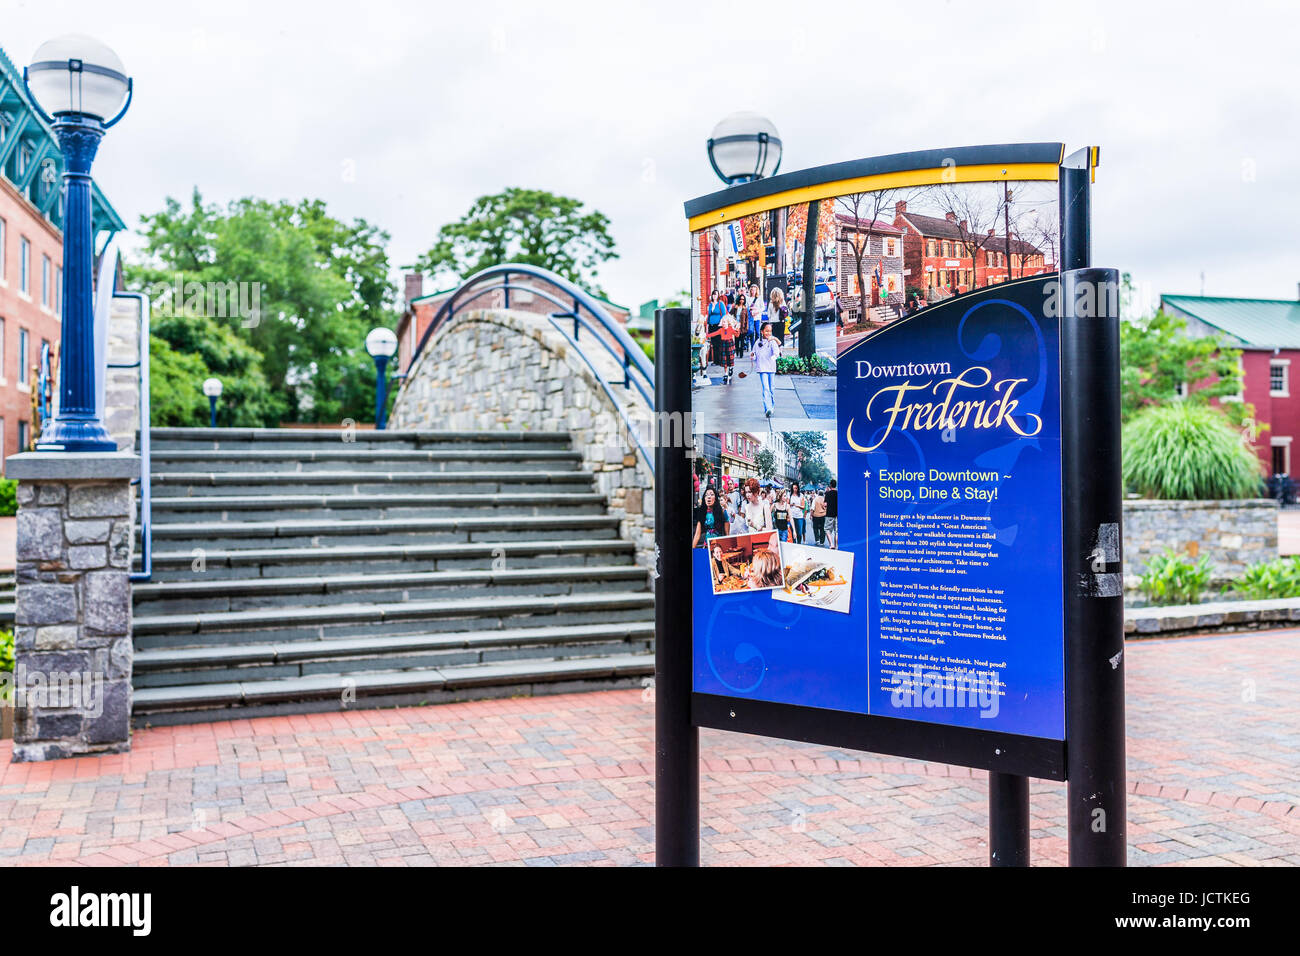 Frederick, USA - May 24, 2017: Carroll Creek in Maryland city park with sign and red brick area - Stock Image